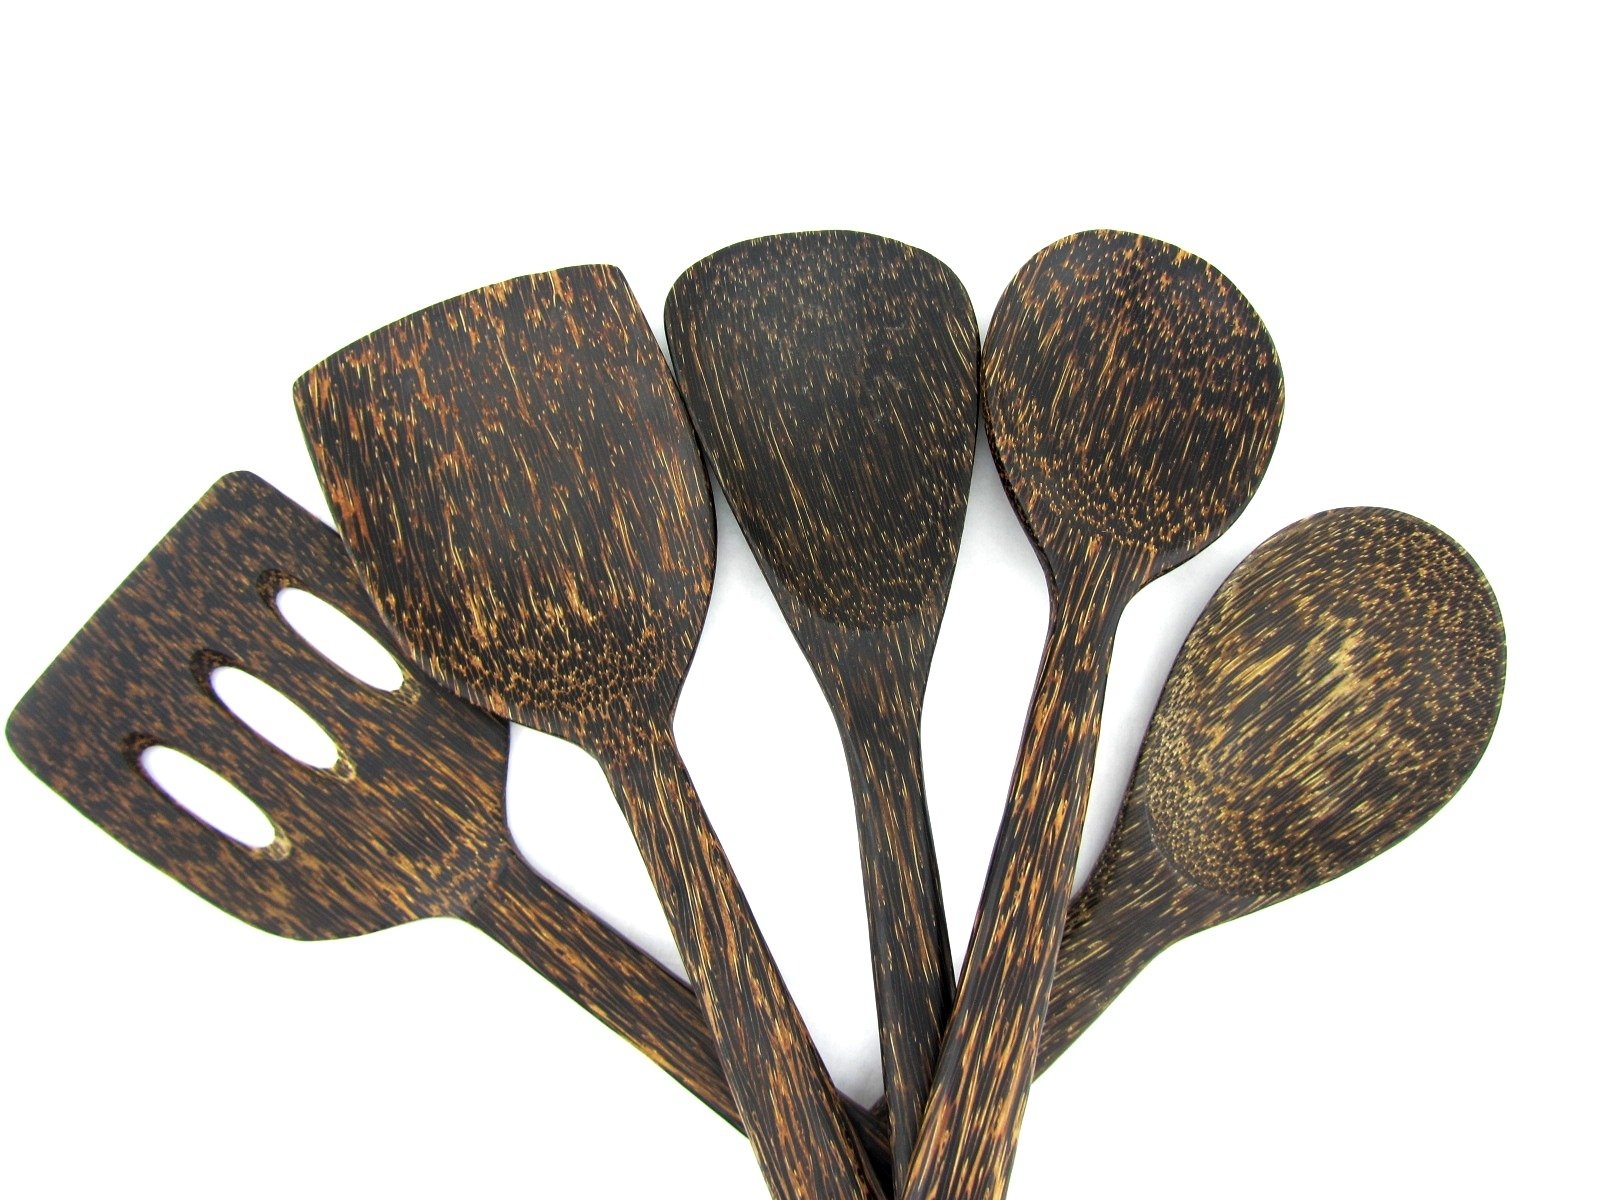 Spatula Wooden Kitchen Tools Palm Wood Cooking Utensils Set of 5